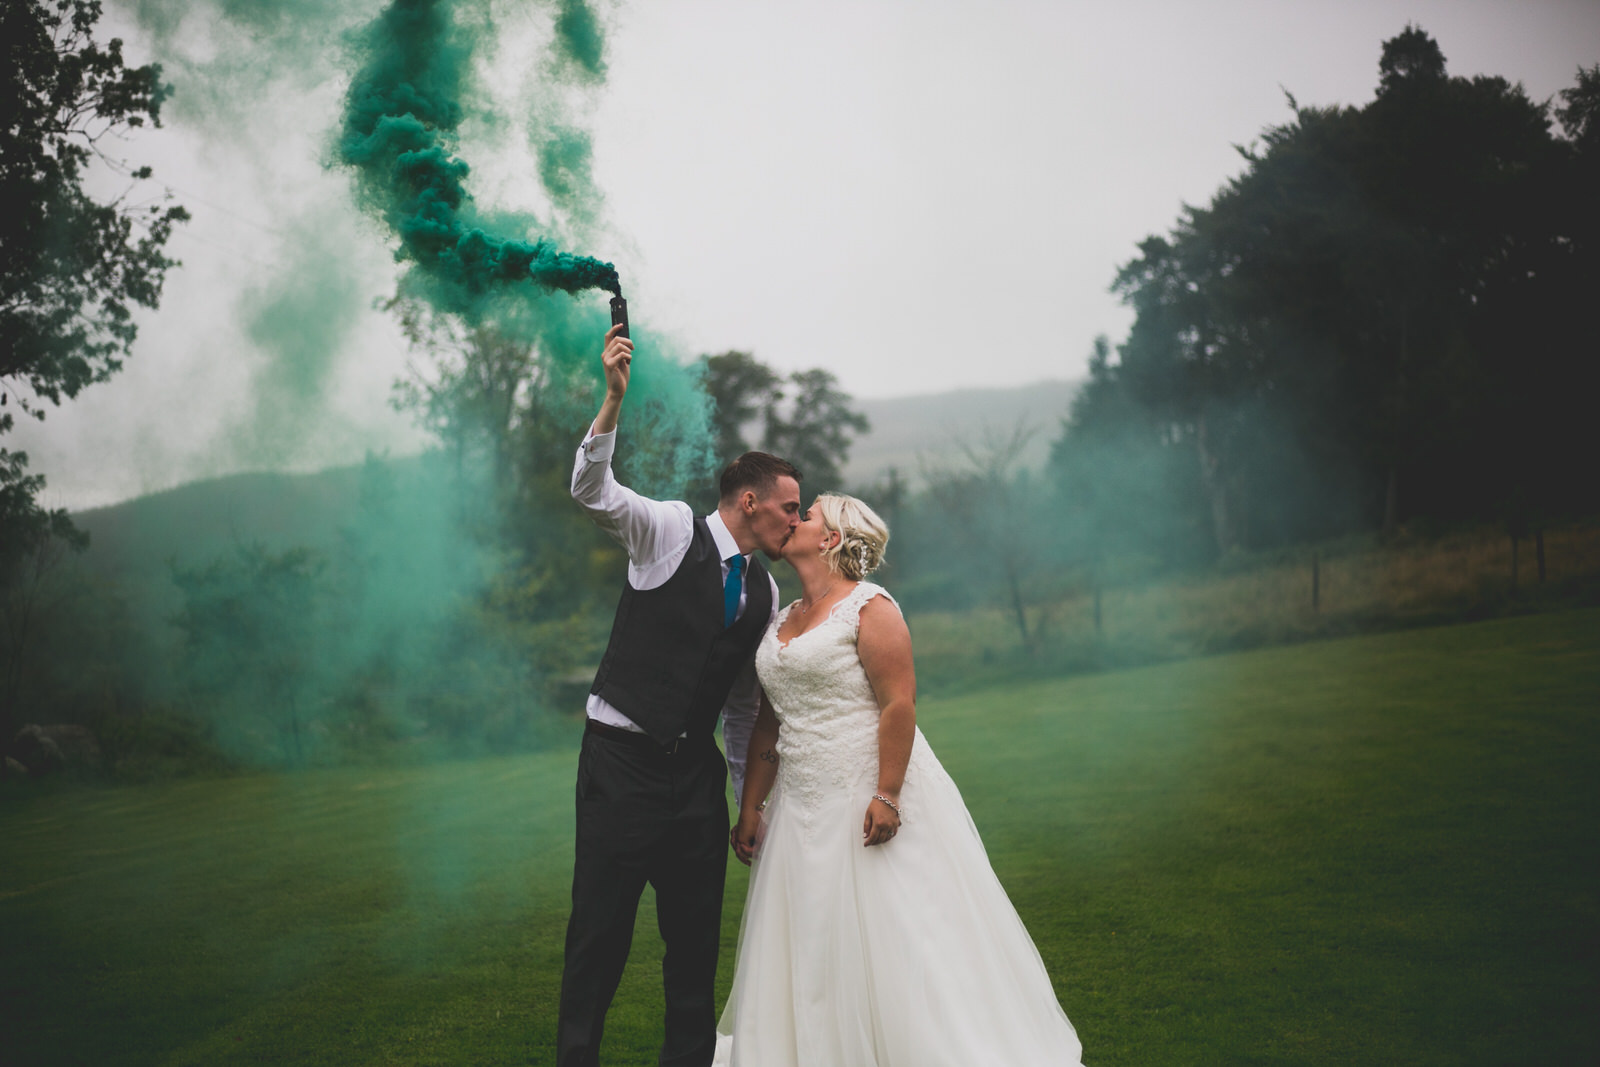 Green smoke bomb wedding photography